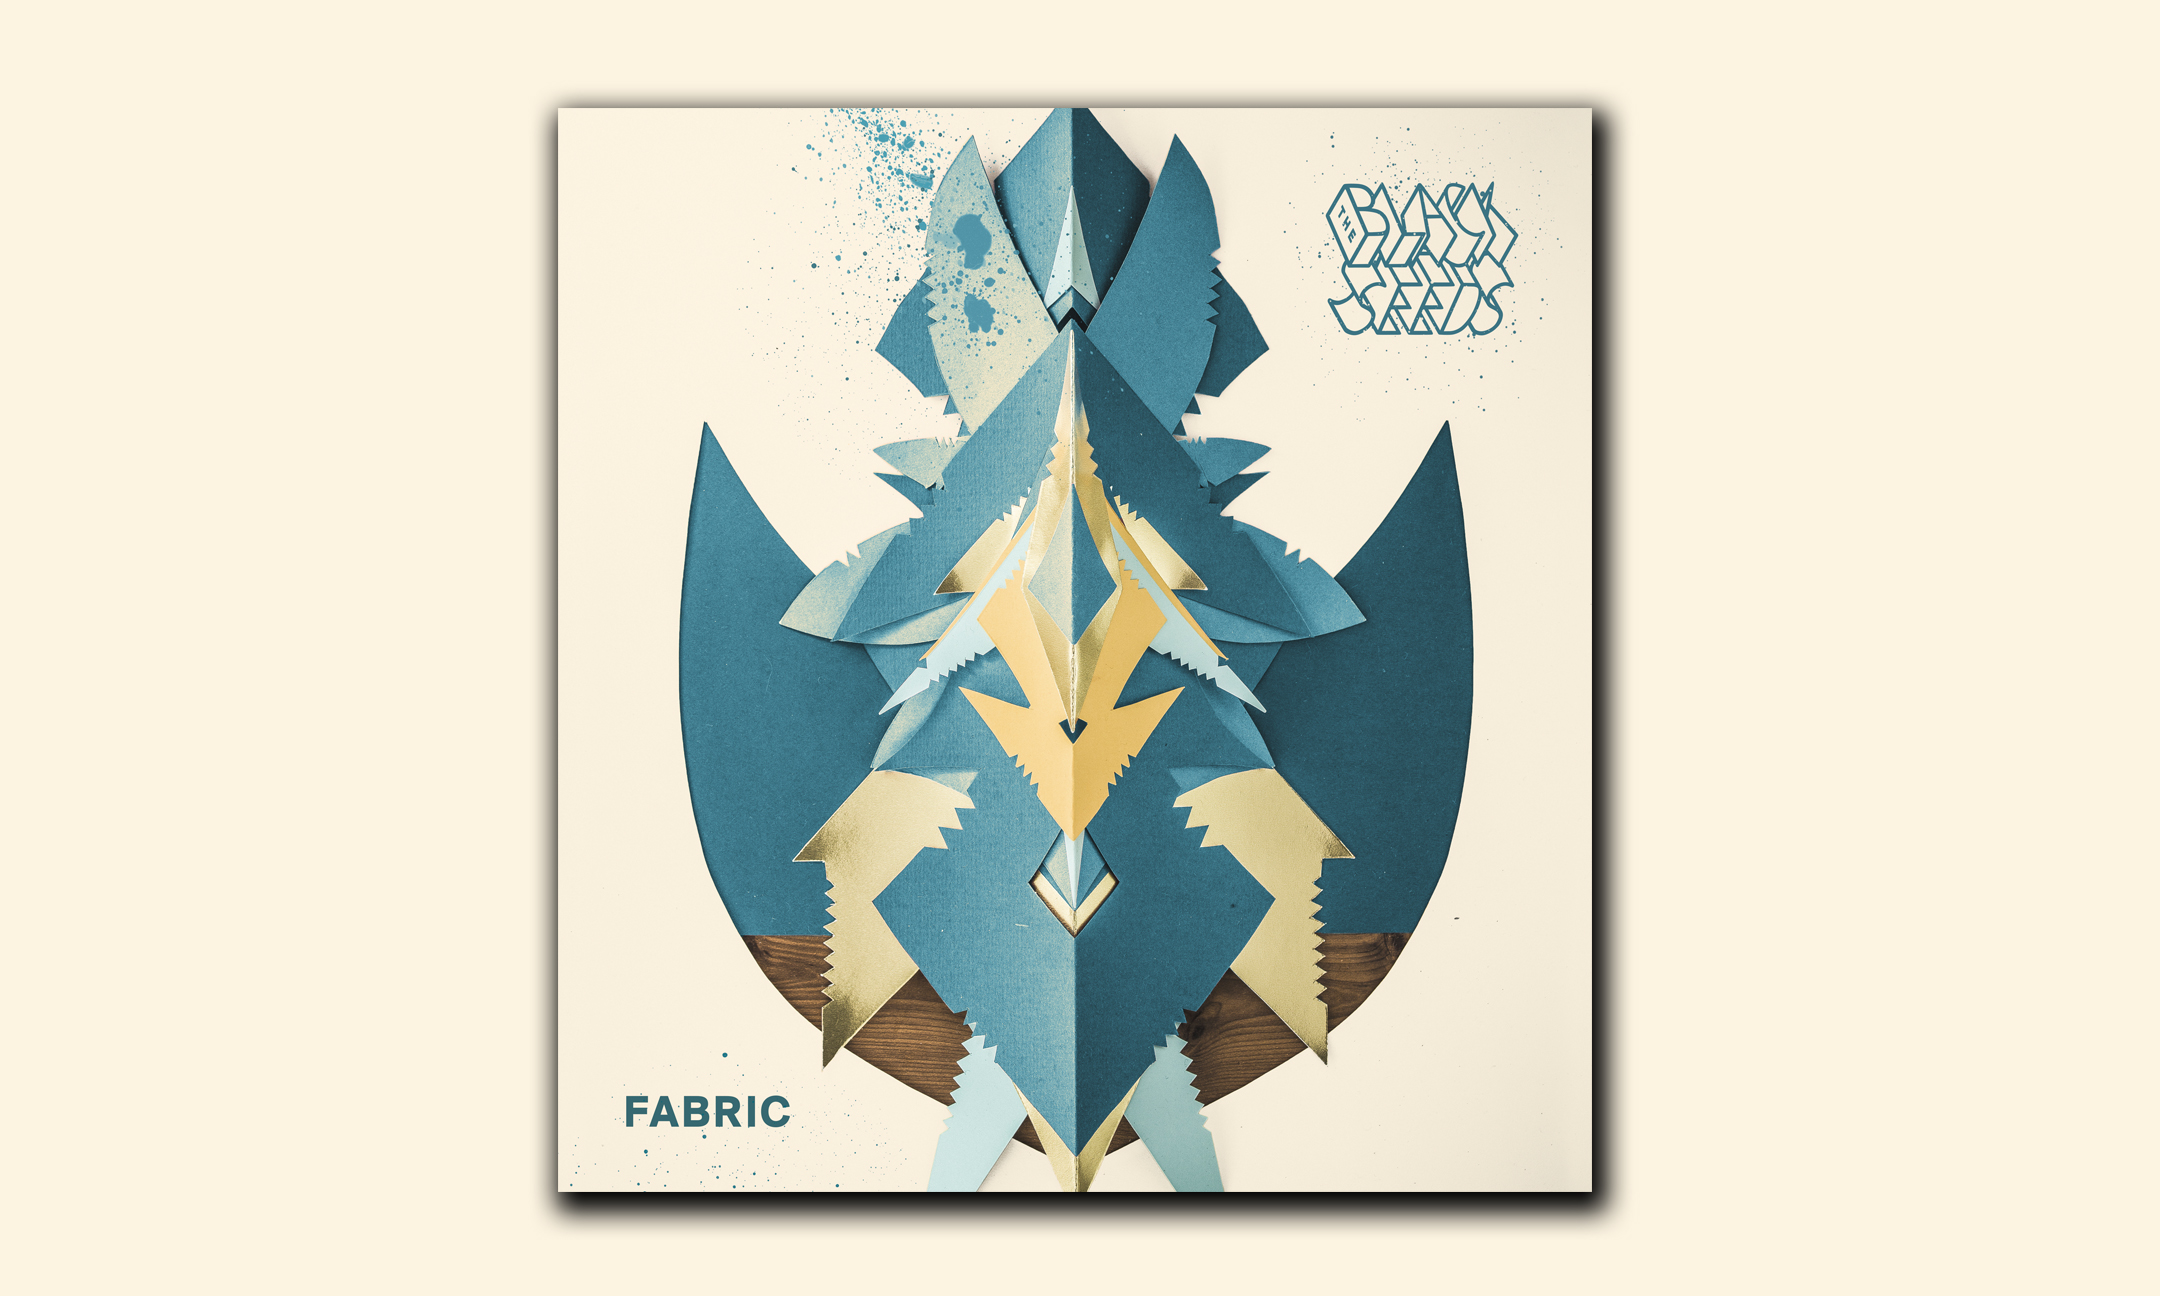 "The Black Seeds Release #NewAlbum ""Fabric"" Today"